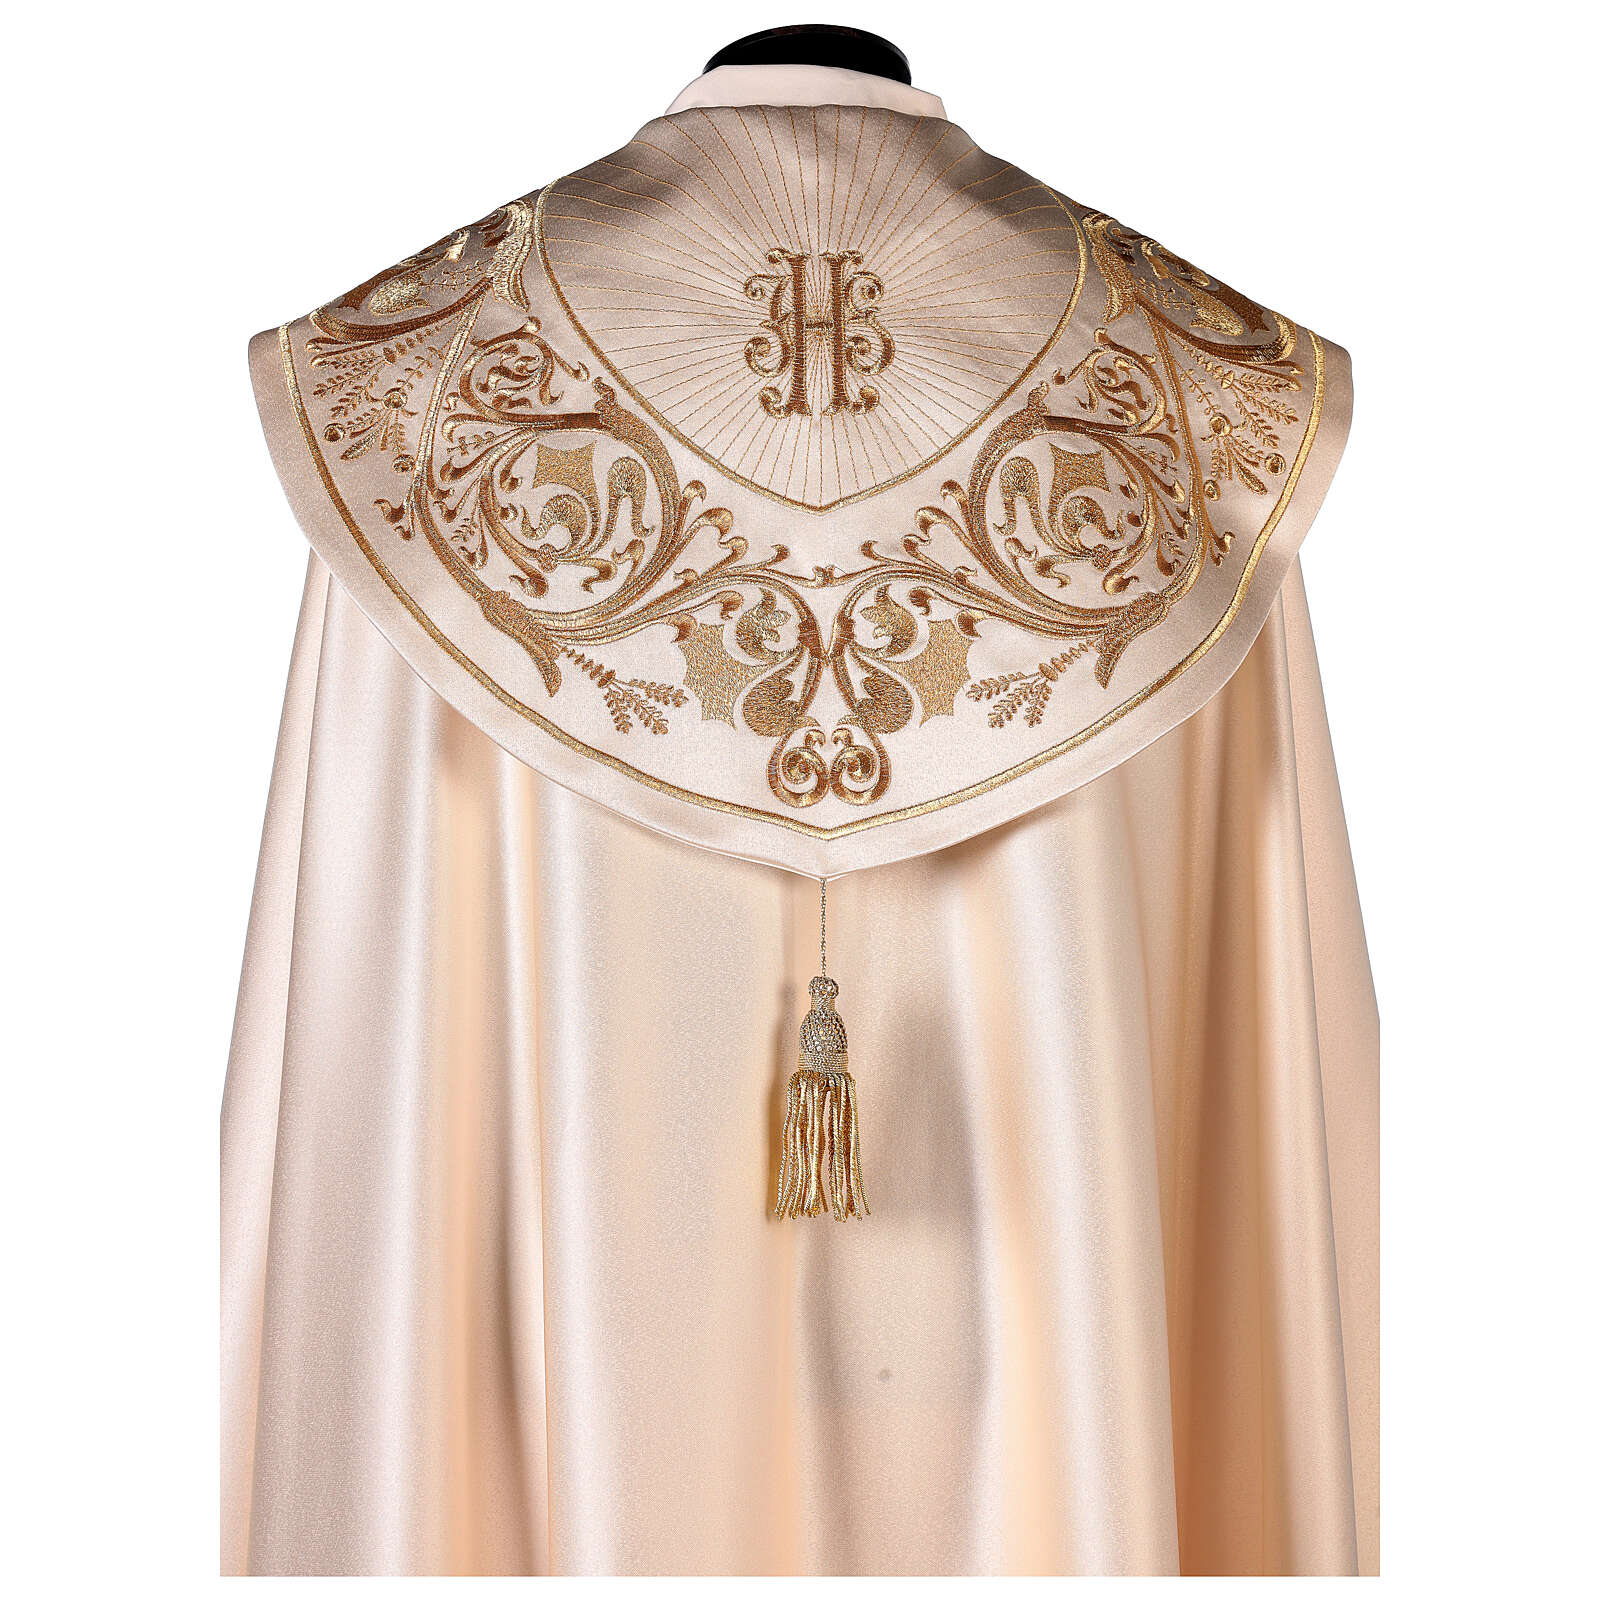 Cope in 80% cream polyester with gold embroideries 4